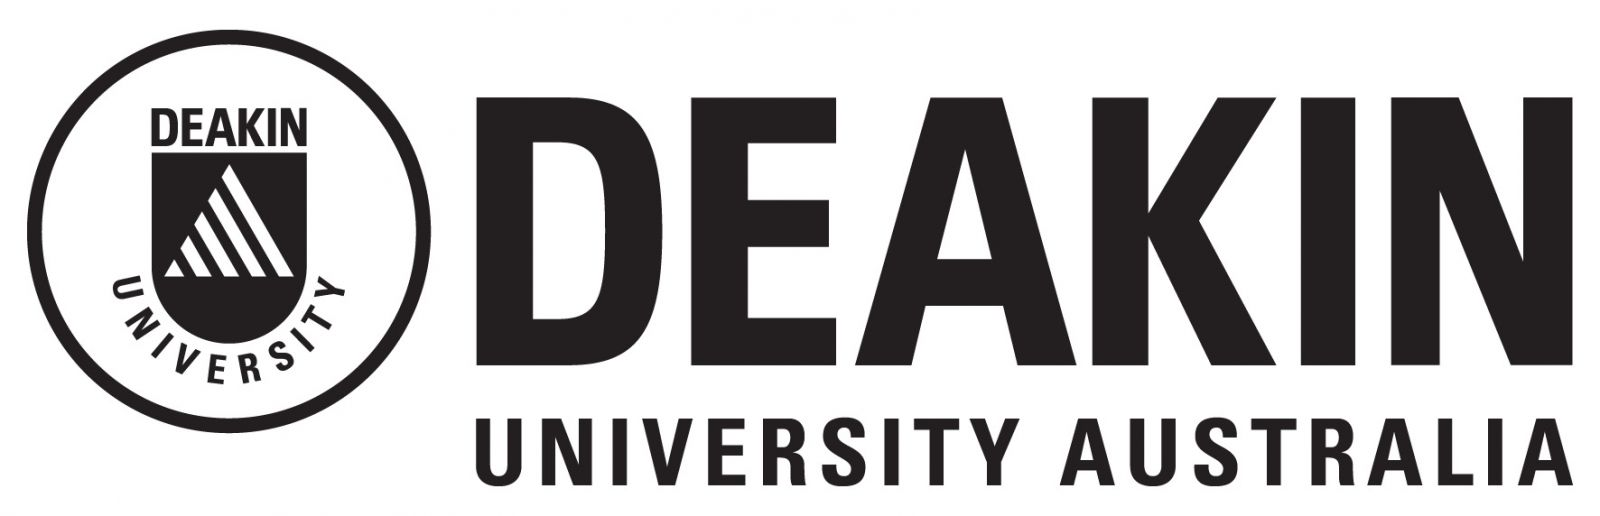 Deakin%20University-logo-studyco Application For Study Visa Form English on visa invitation form, insurance form, work permit form, doctor physical examination form, visa ds-160 form sample, invitation letter form, visa application letter, passport renewal form, job search form, tax form, green card form, travel itinerary form, visa documents folder, nomination form, visa passport,